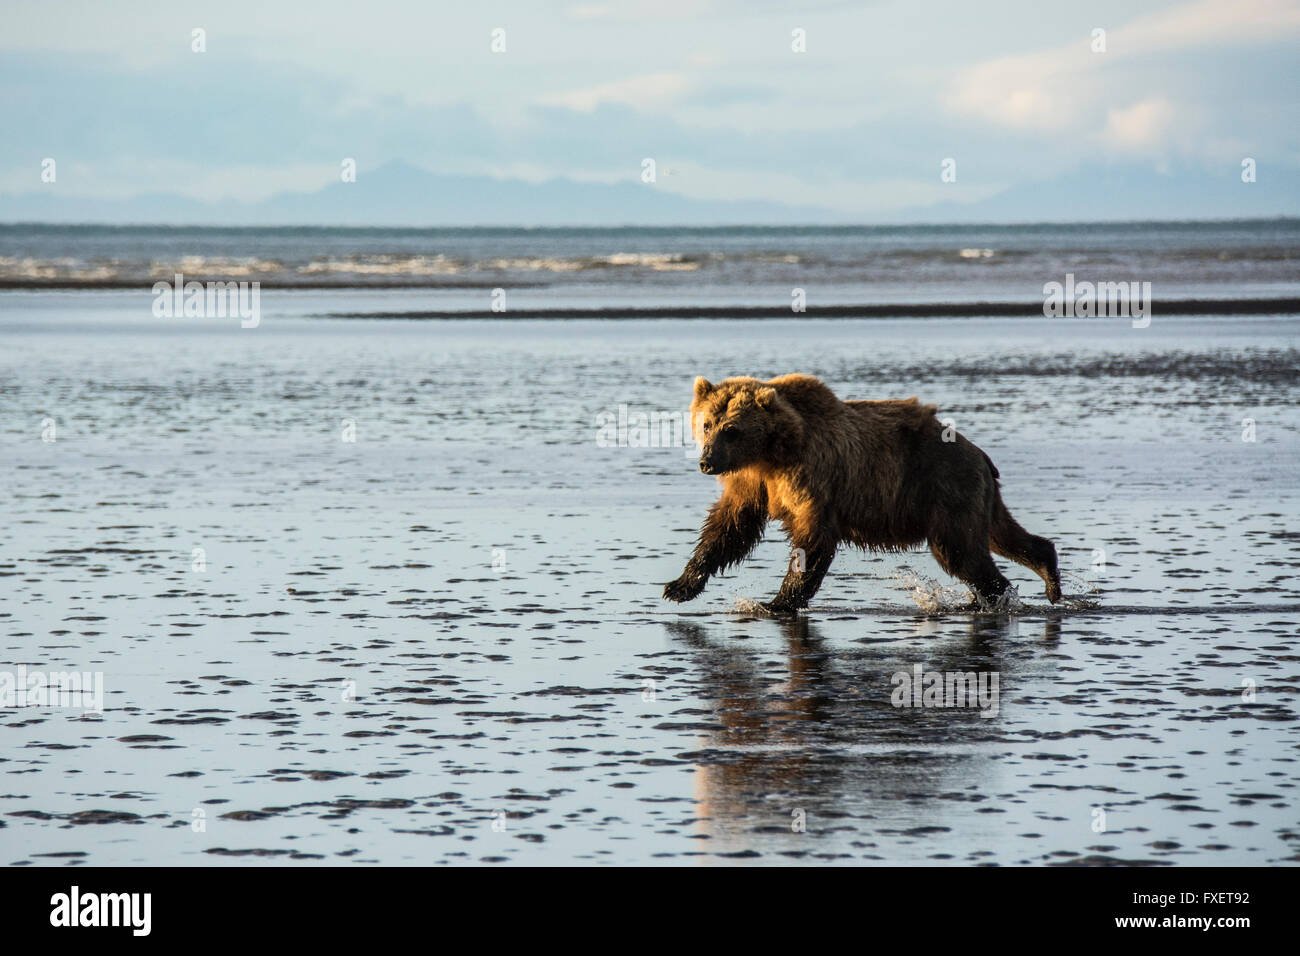 Adult Wild Grizzly Bear, Ursus arctos, running across the tidal flats of the Cook Inlet, Alaska, USA - Stock Image